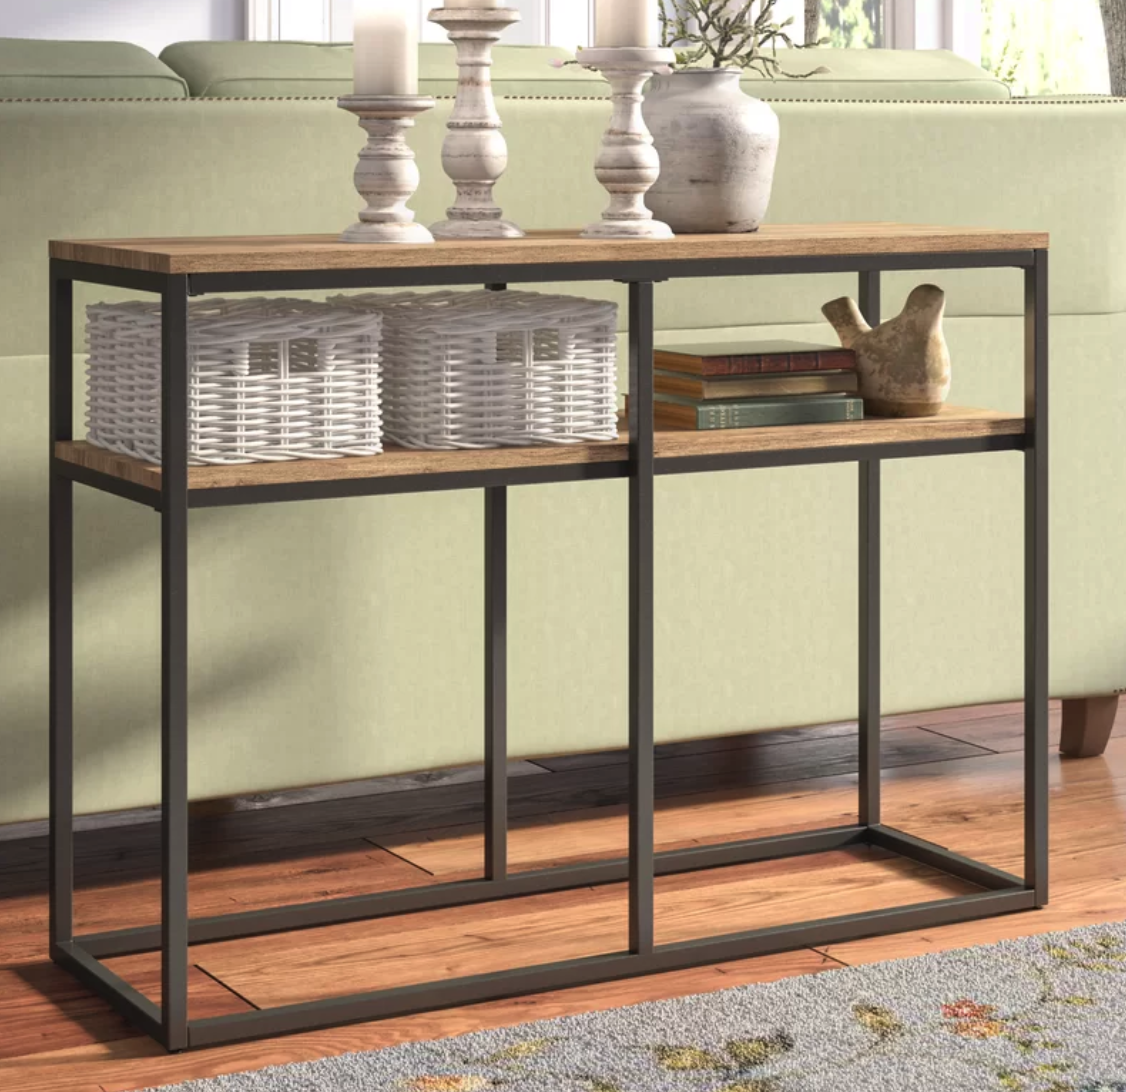 forteau-console-table